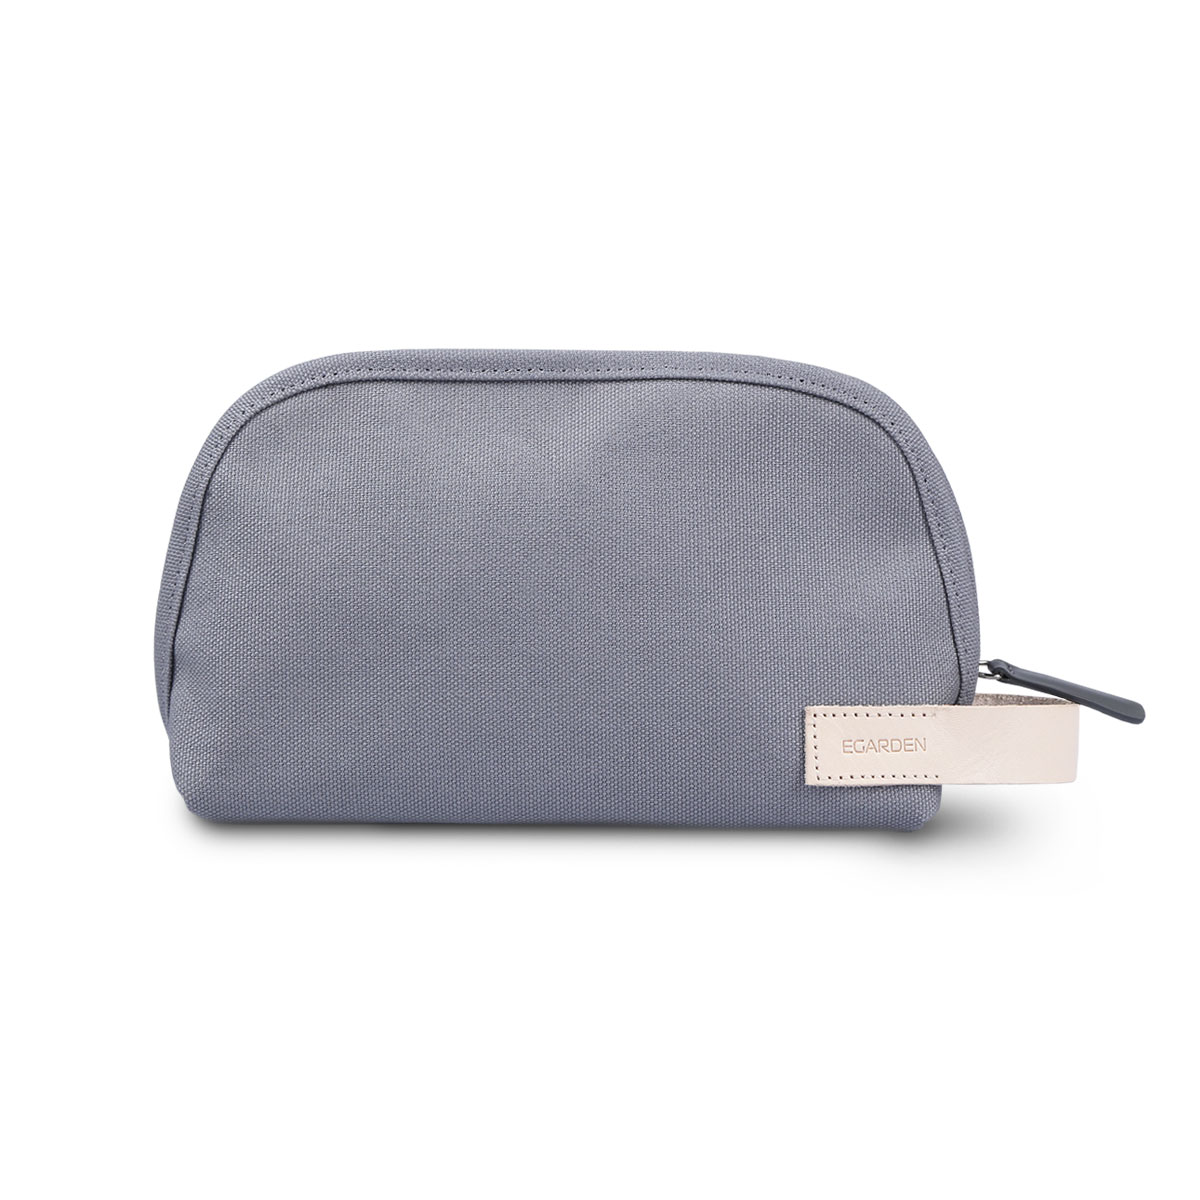 iT Pouch Light Grey(캔버스)